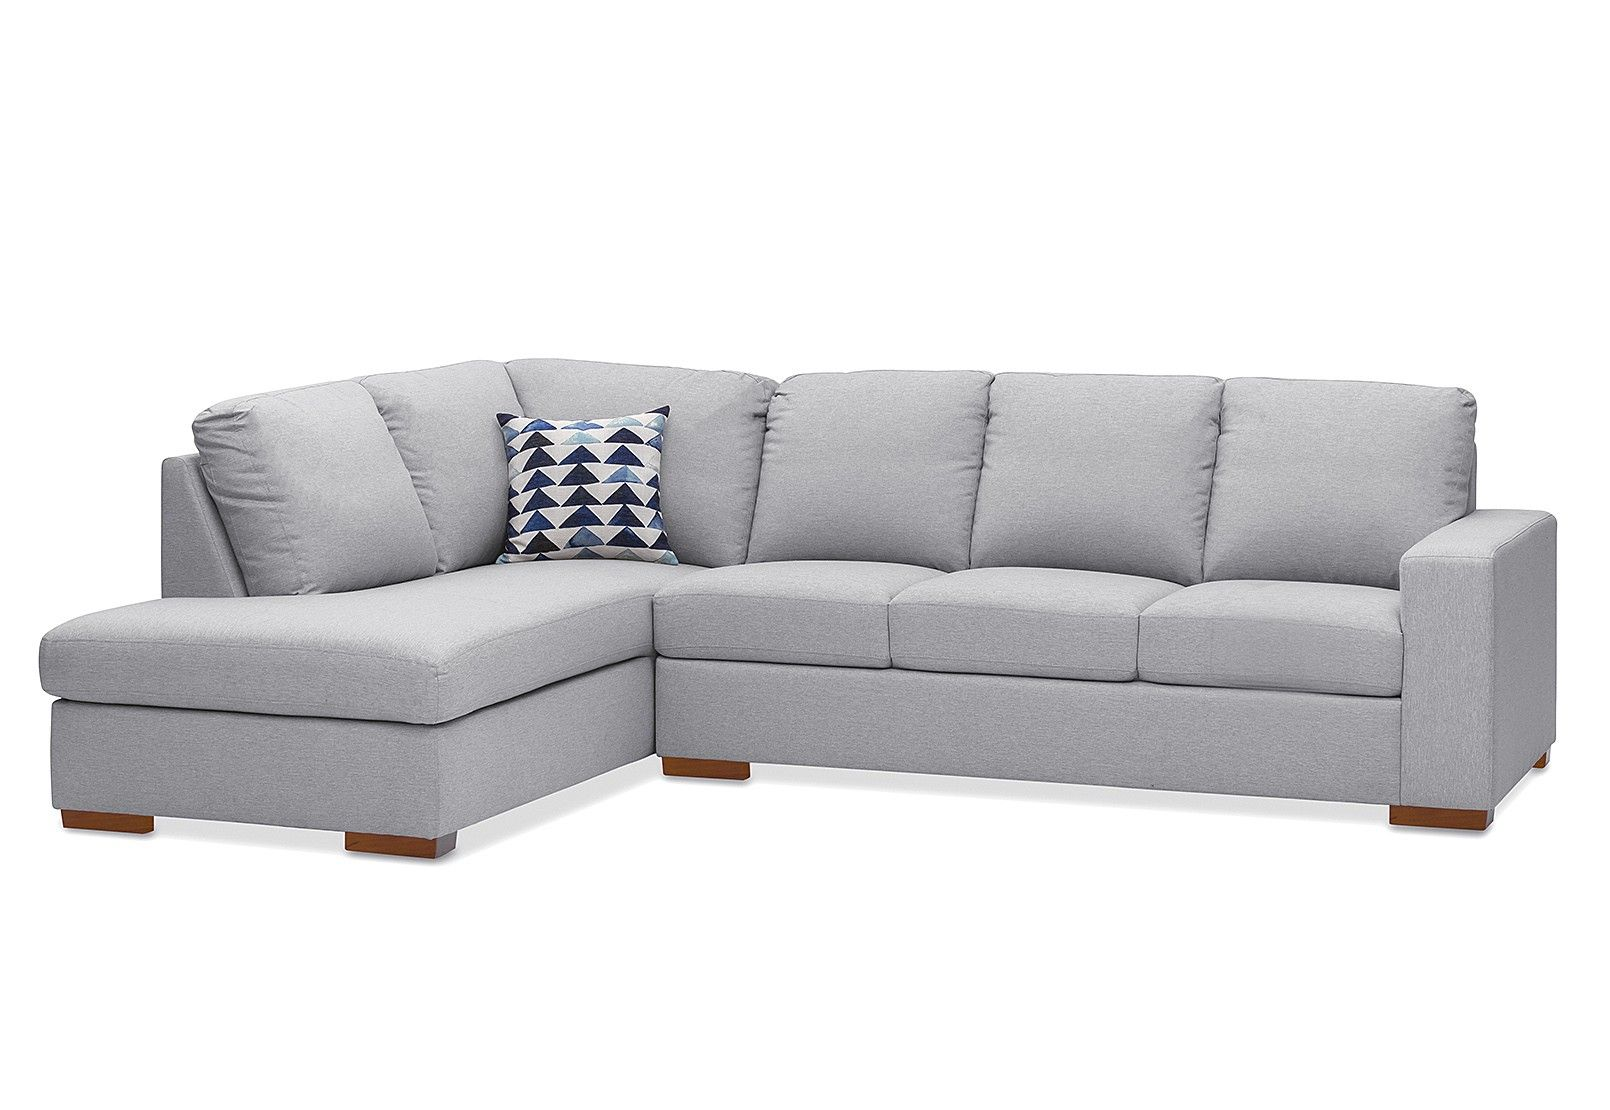 Lazytime plus sofa camerich - Camerich Lazytime Sofa Available At Meizai Contemporary Look Pinterest Armchairs House And Living Rooms